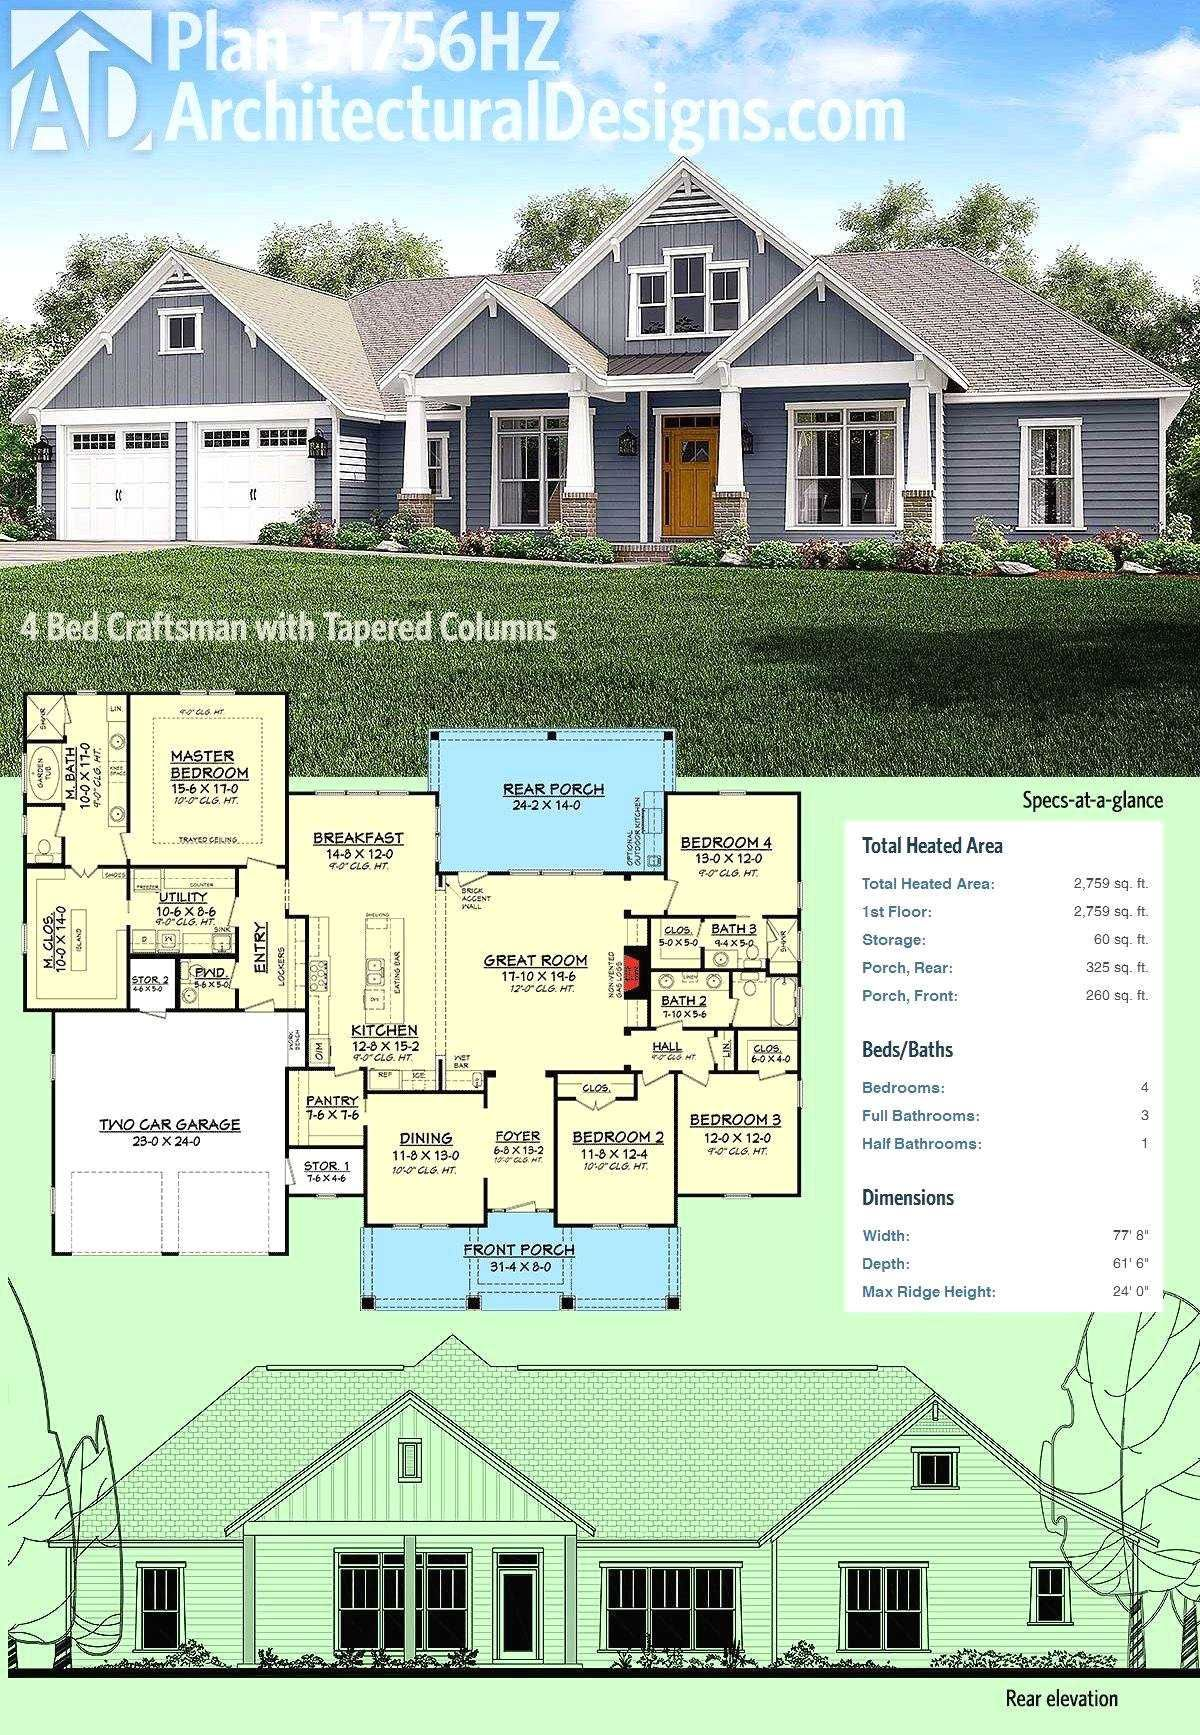 Single Story Small Farmhouse Plans Screet Single Story Small Farmhouse Plans 18 Unique Co Craftsman House Plans Craftsman Style House Plans Craftsman House